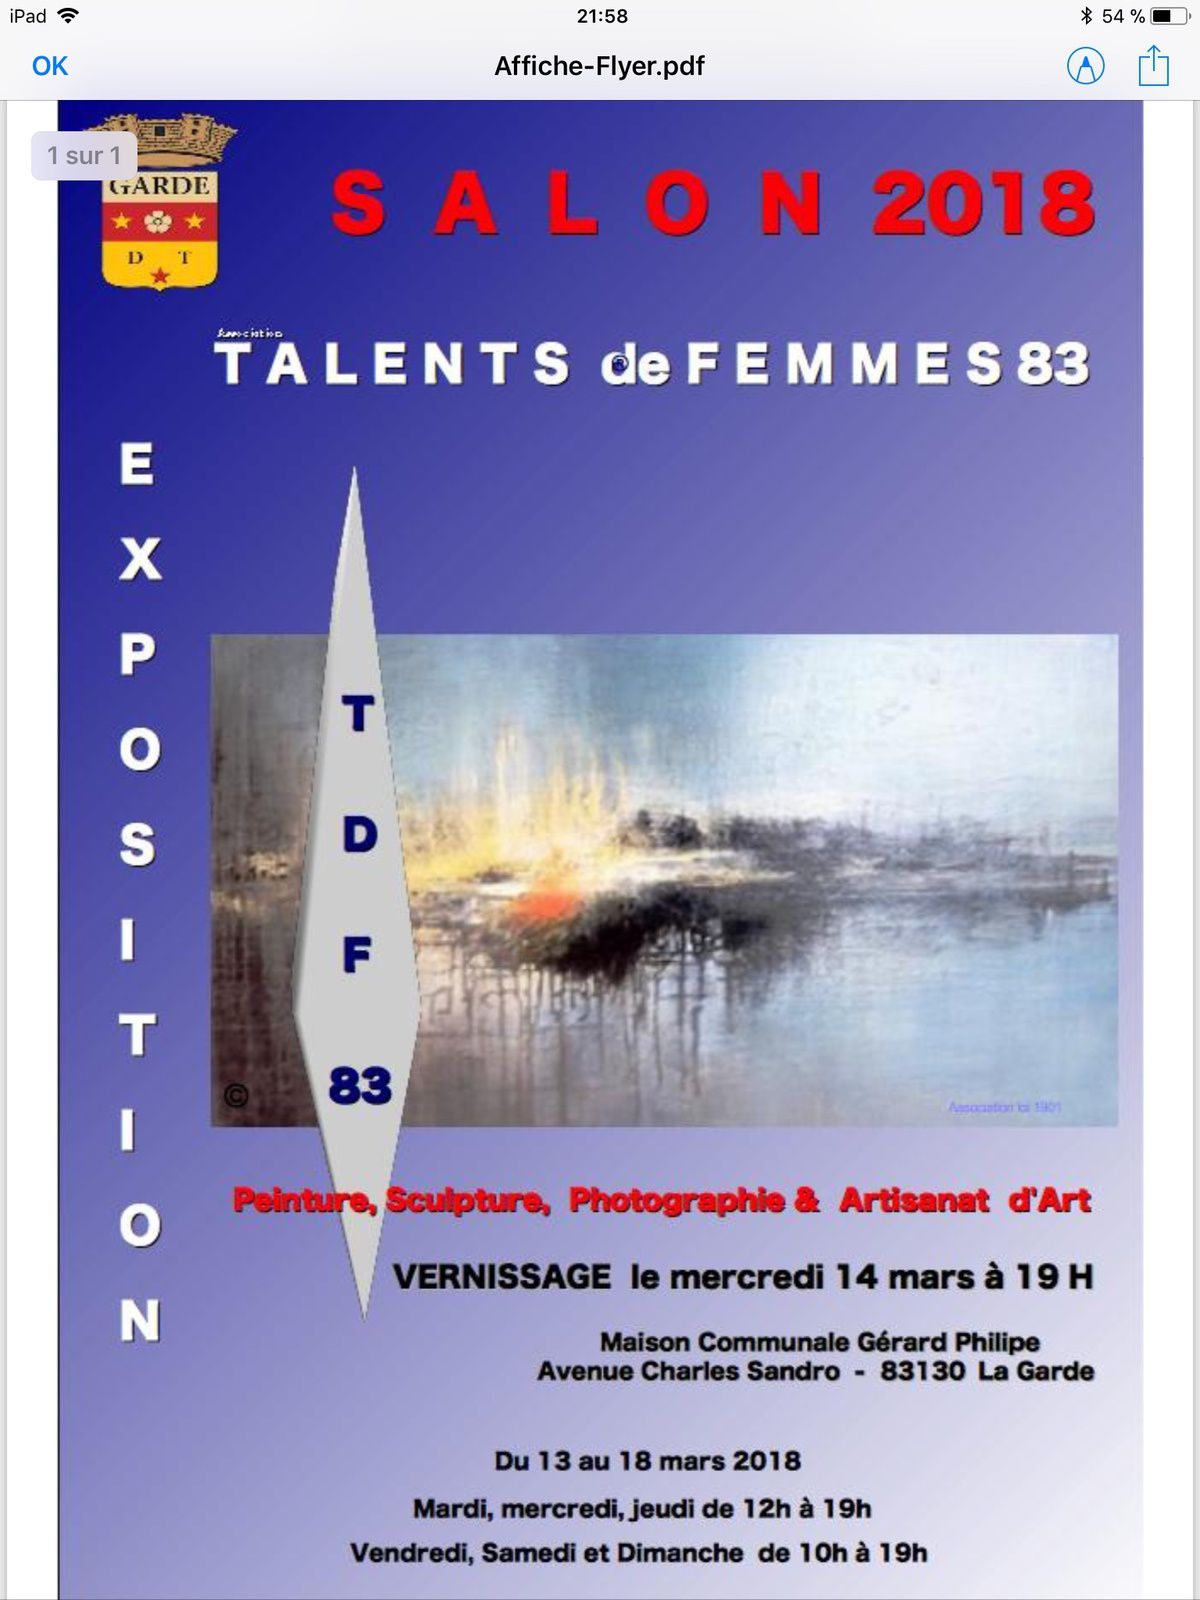 PARTICIPATION TALENT DE FEMMES LA GARDE